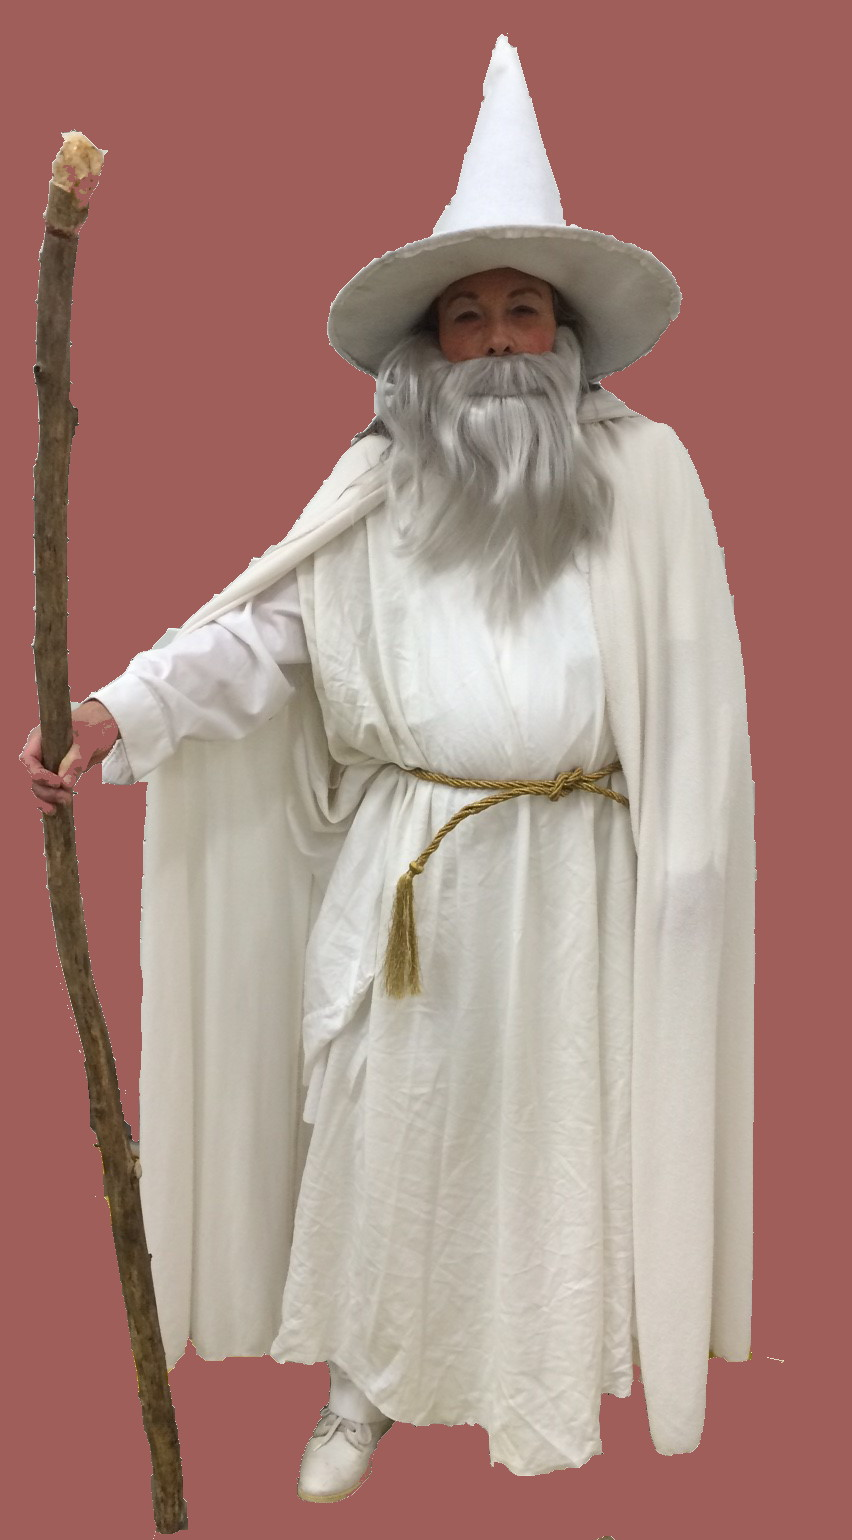 Gandalf the Conductor